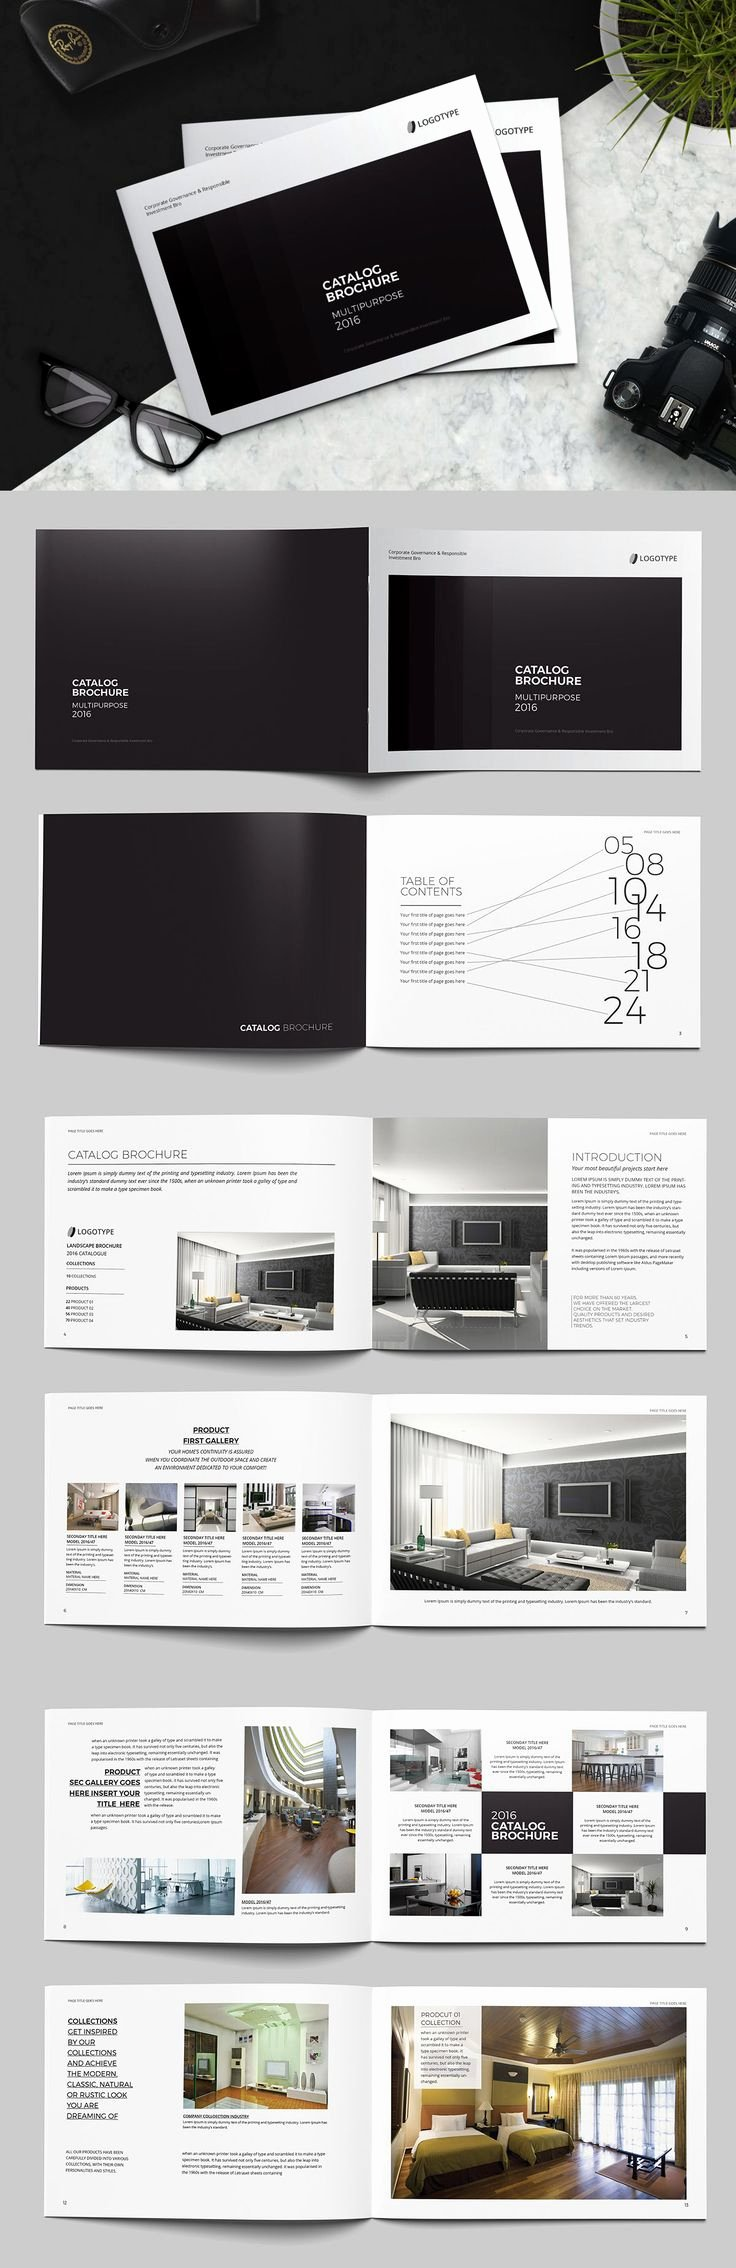 Product Catalogue Template Pdf Fresh A4 Size Brochure Templates Psd Free Download Graphy